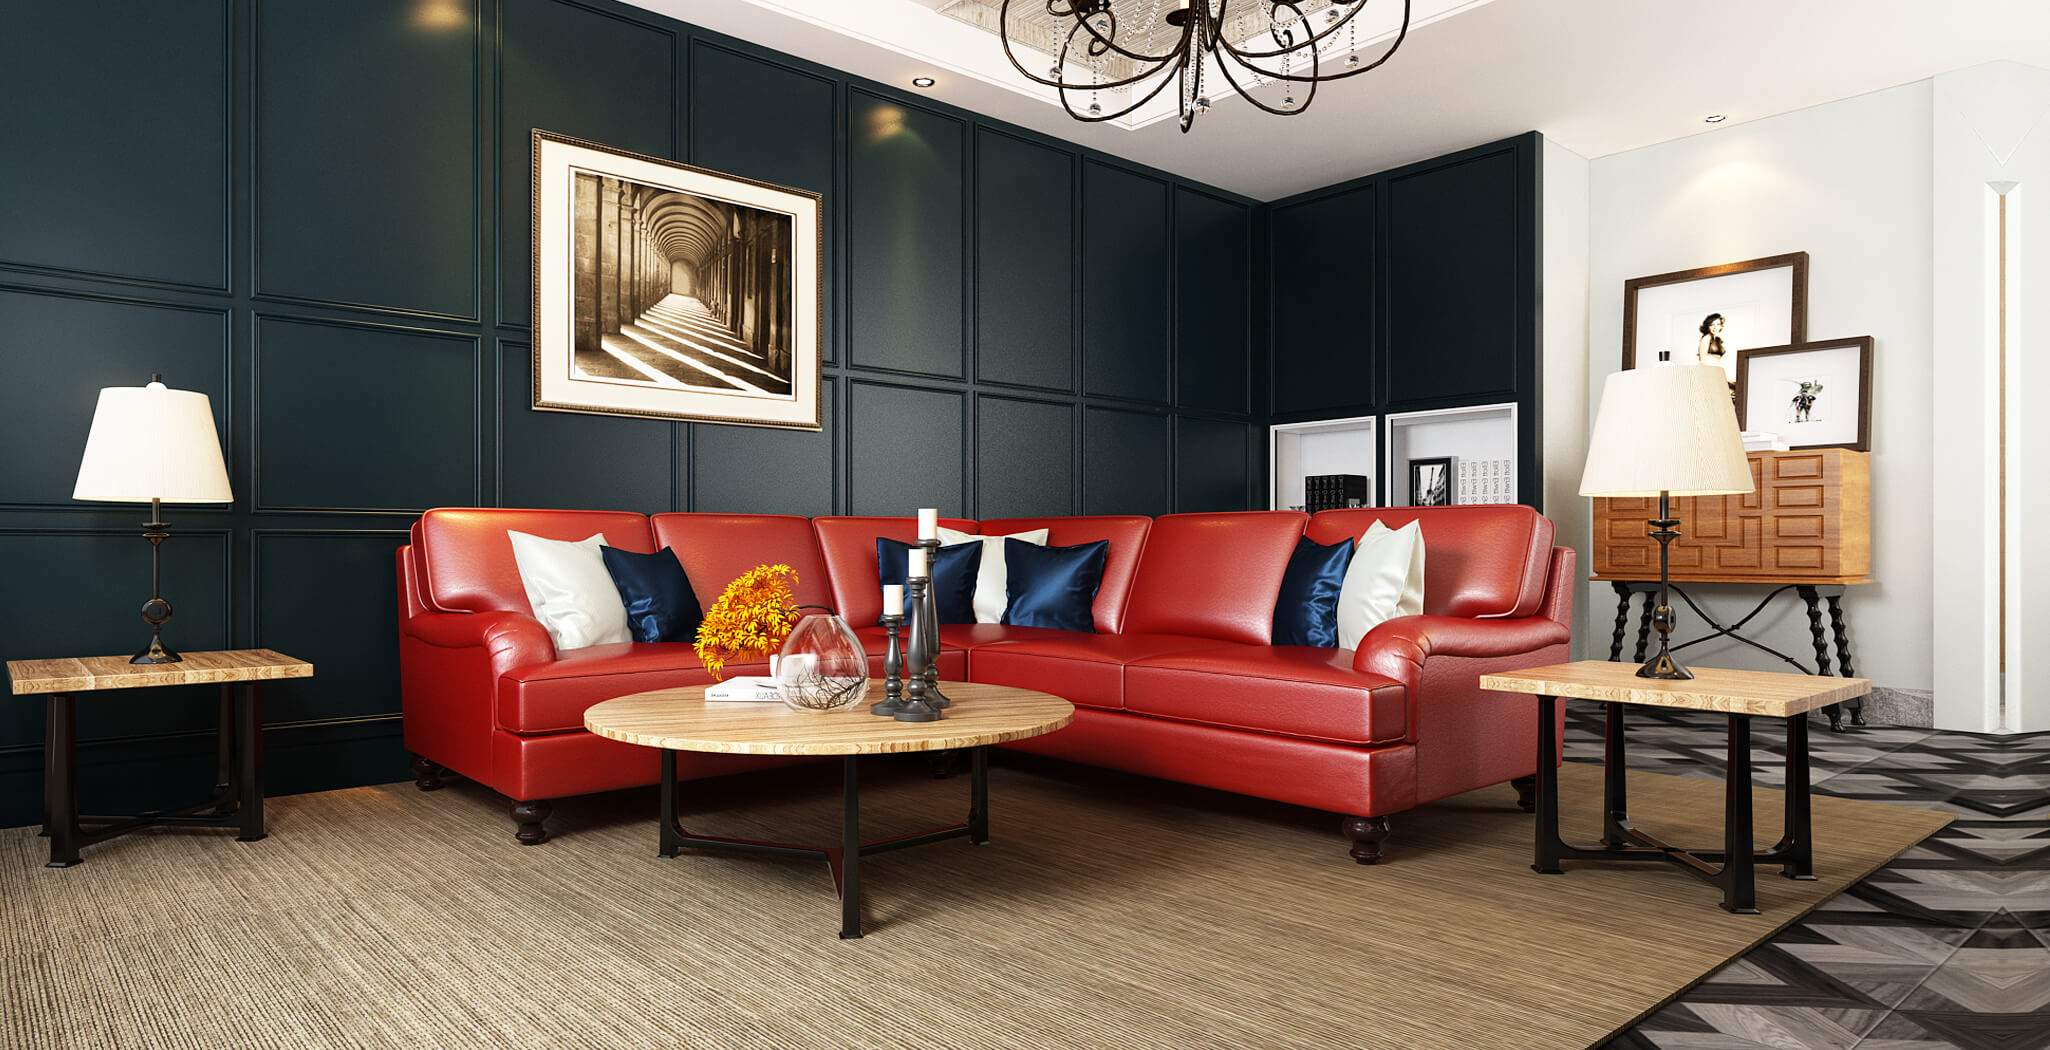 hamilton sectional furniture gallery 2